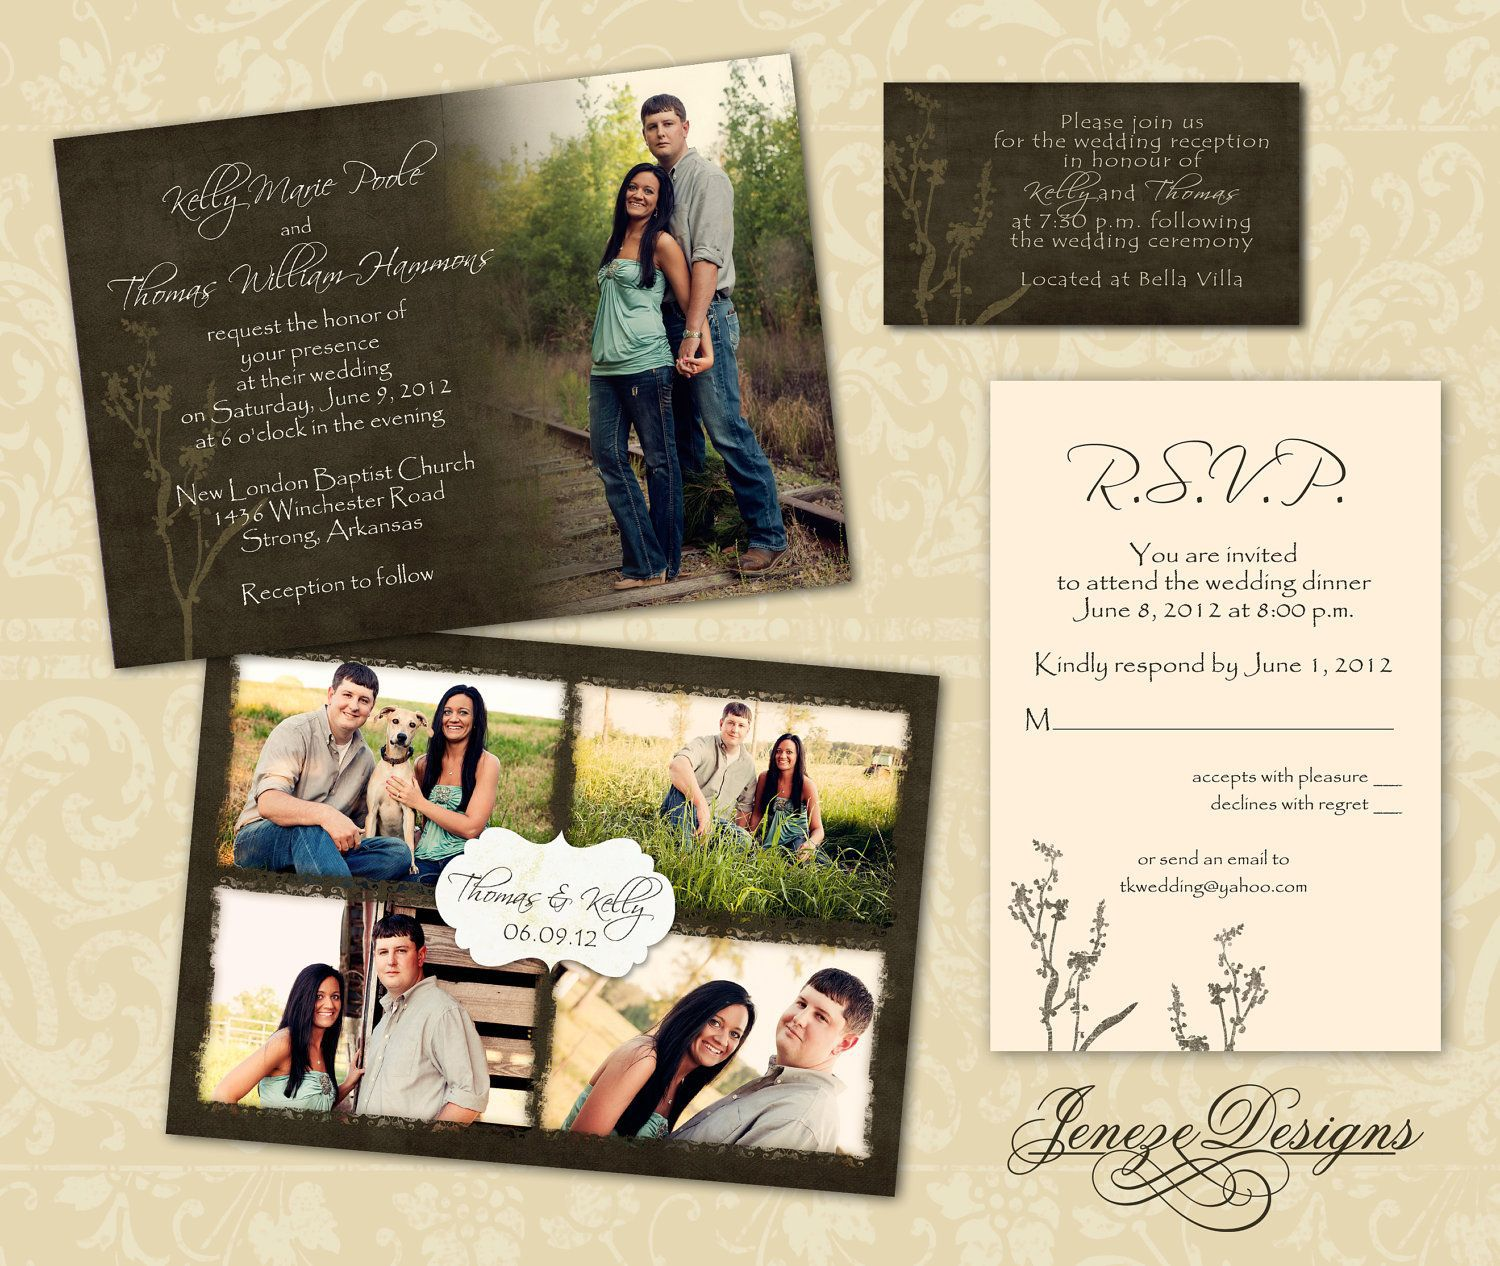 000 Unbelievable Photoshop Wedding Invitation Template High Definition  Templates Hindu Psd Free Download CardFull